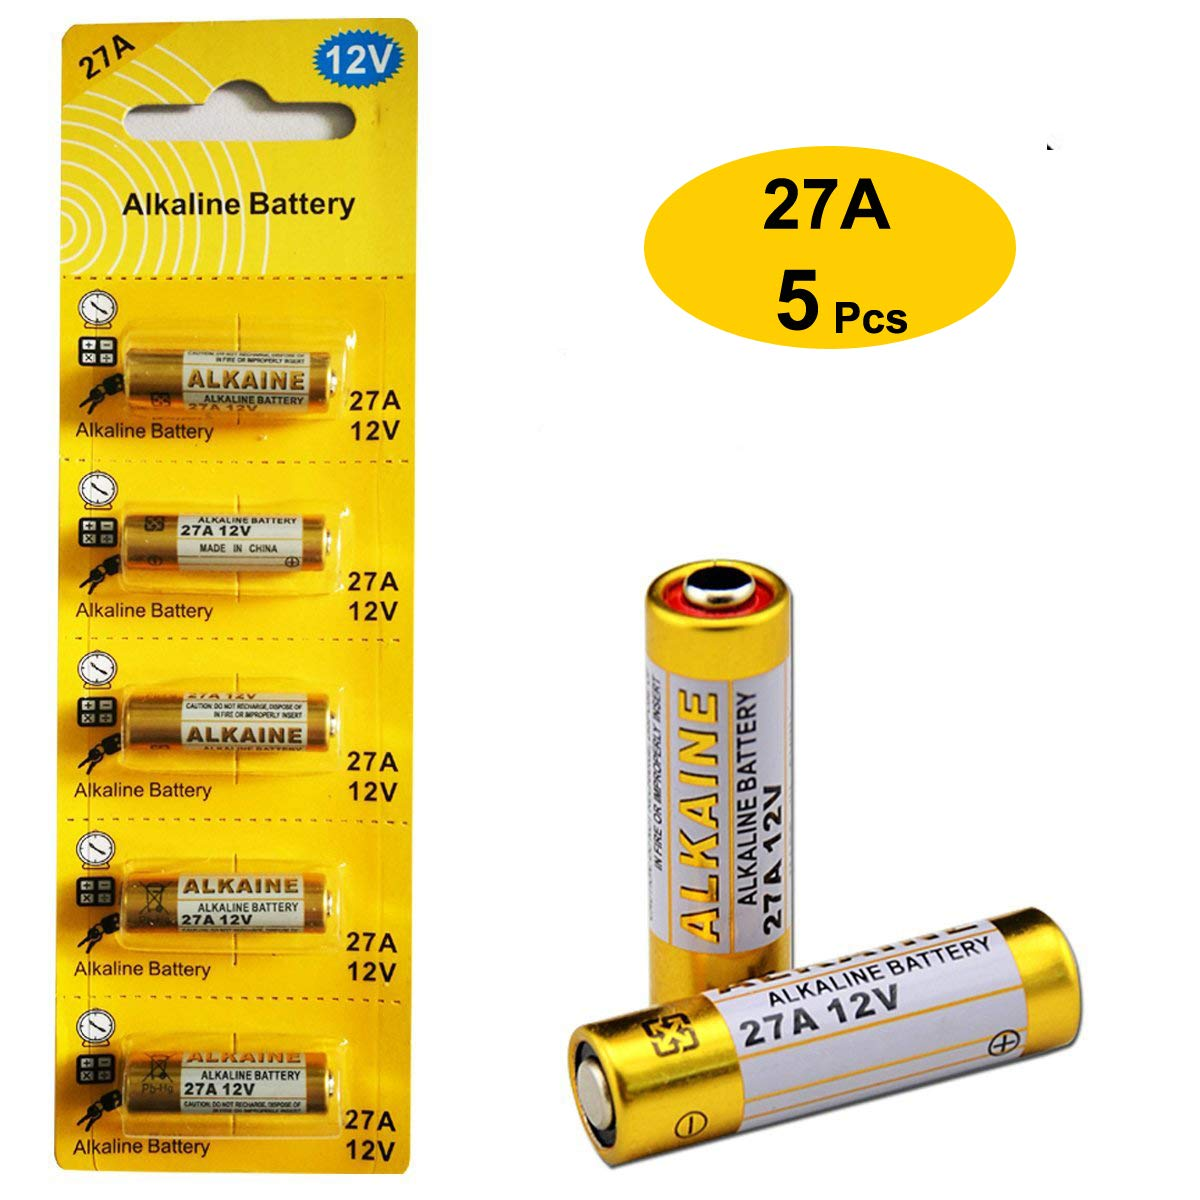 27A 12V Alkaline Battery (5-Pack)